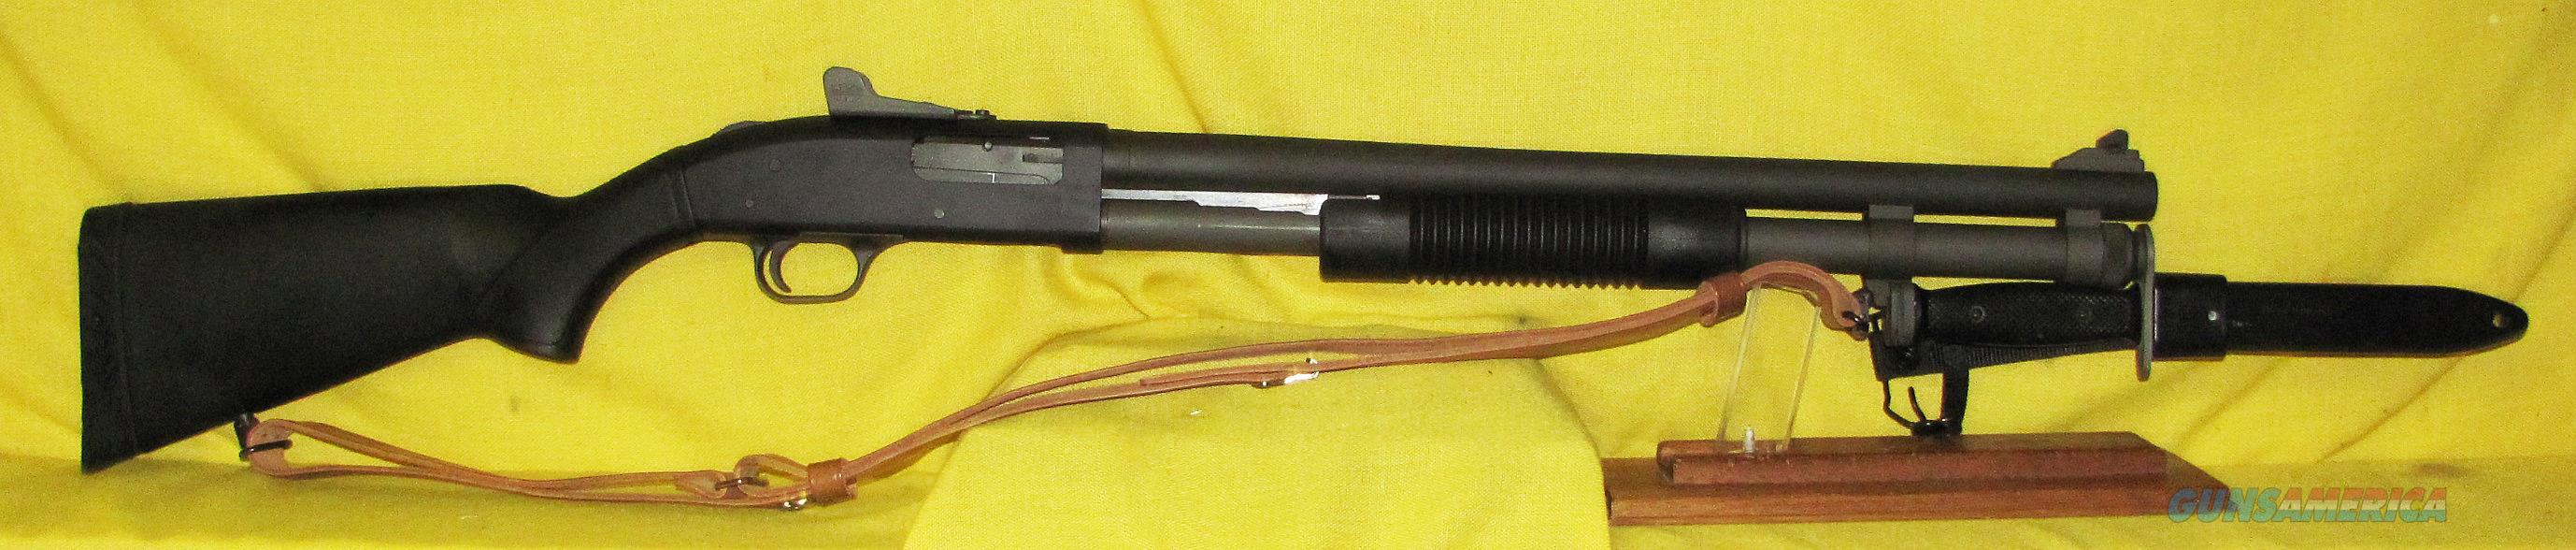 MOSSBERG 590-A1  Guns > Shotguns > Mossberg Shotguns > Pump > Tactical